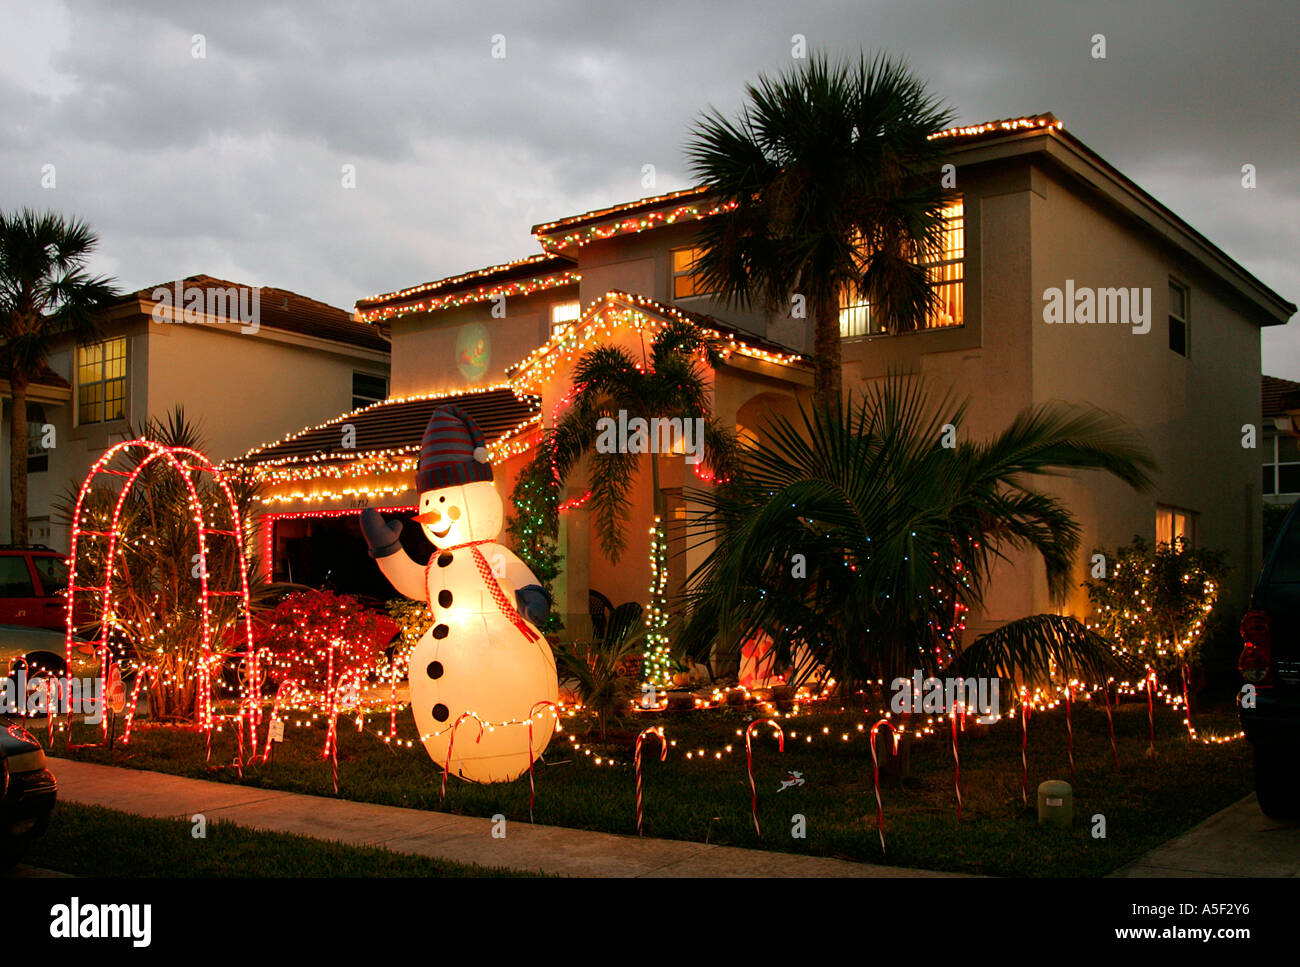 christmas decorations front garden night time twinkling lights palm tree hot weather tacky winter holiday tradition residential